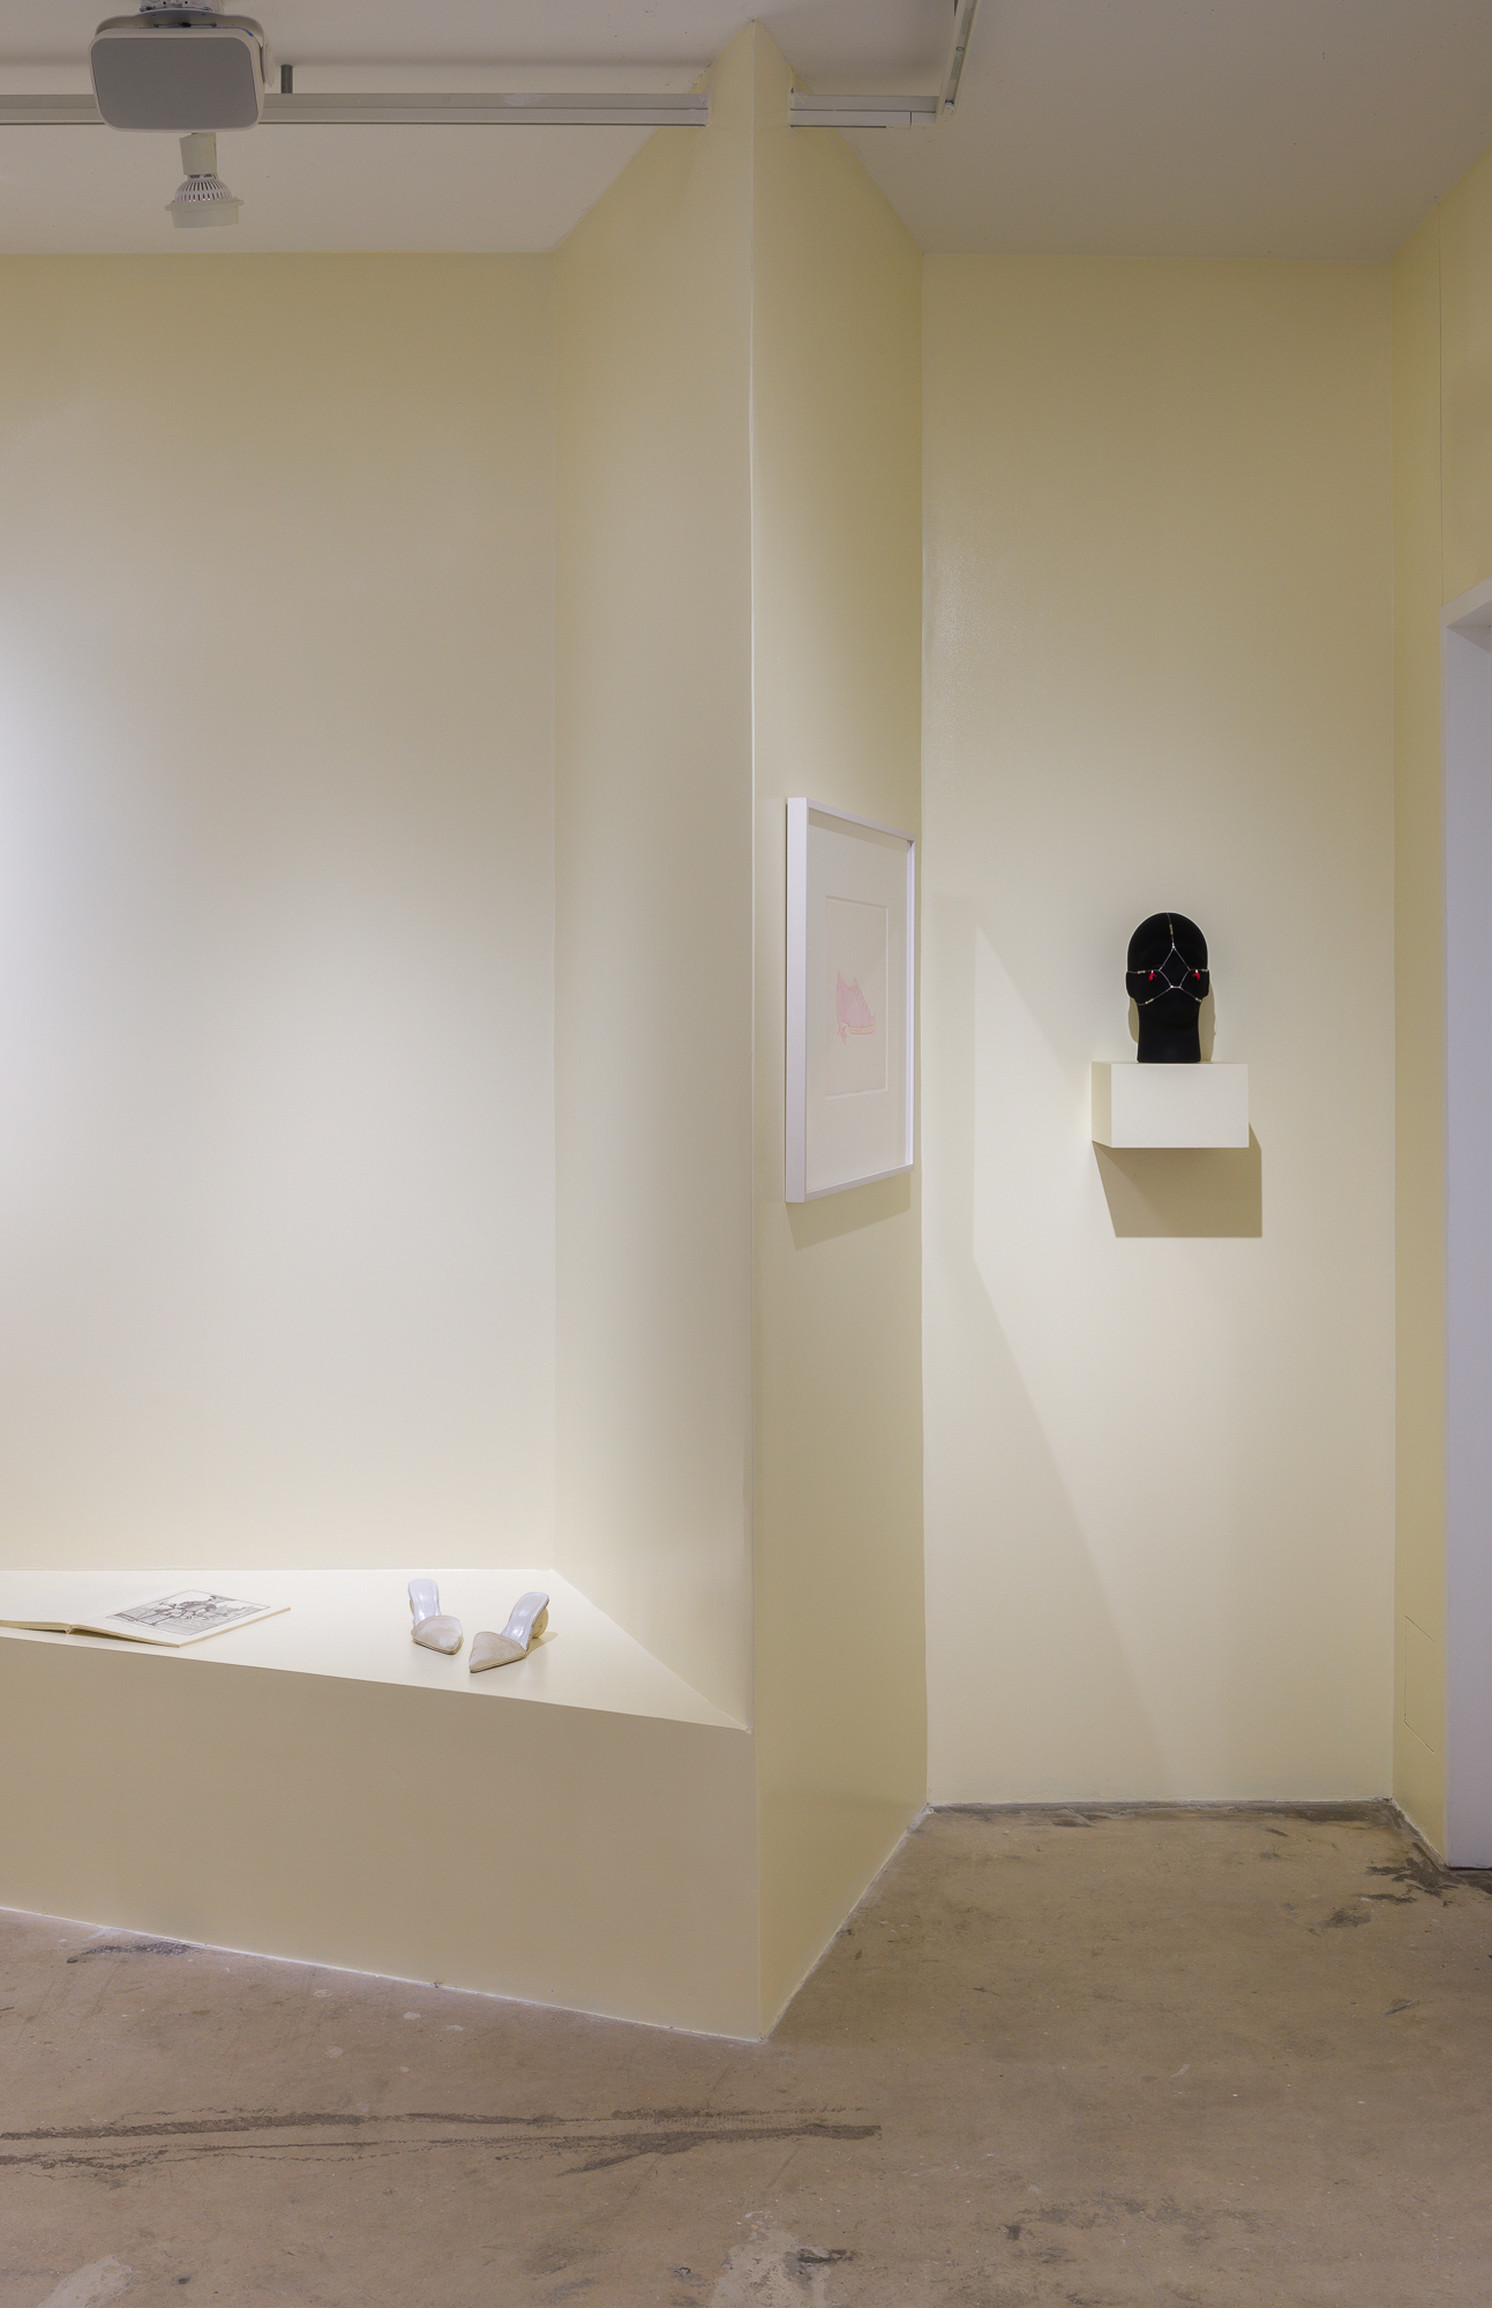 life and limbs, installation view.